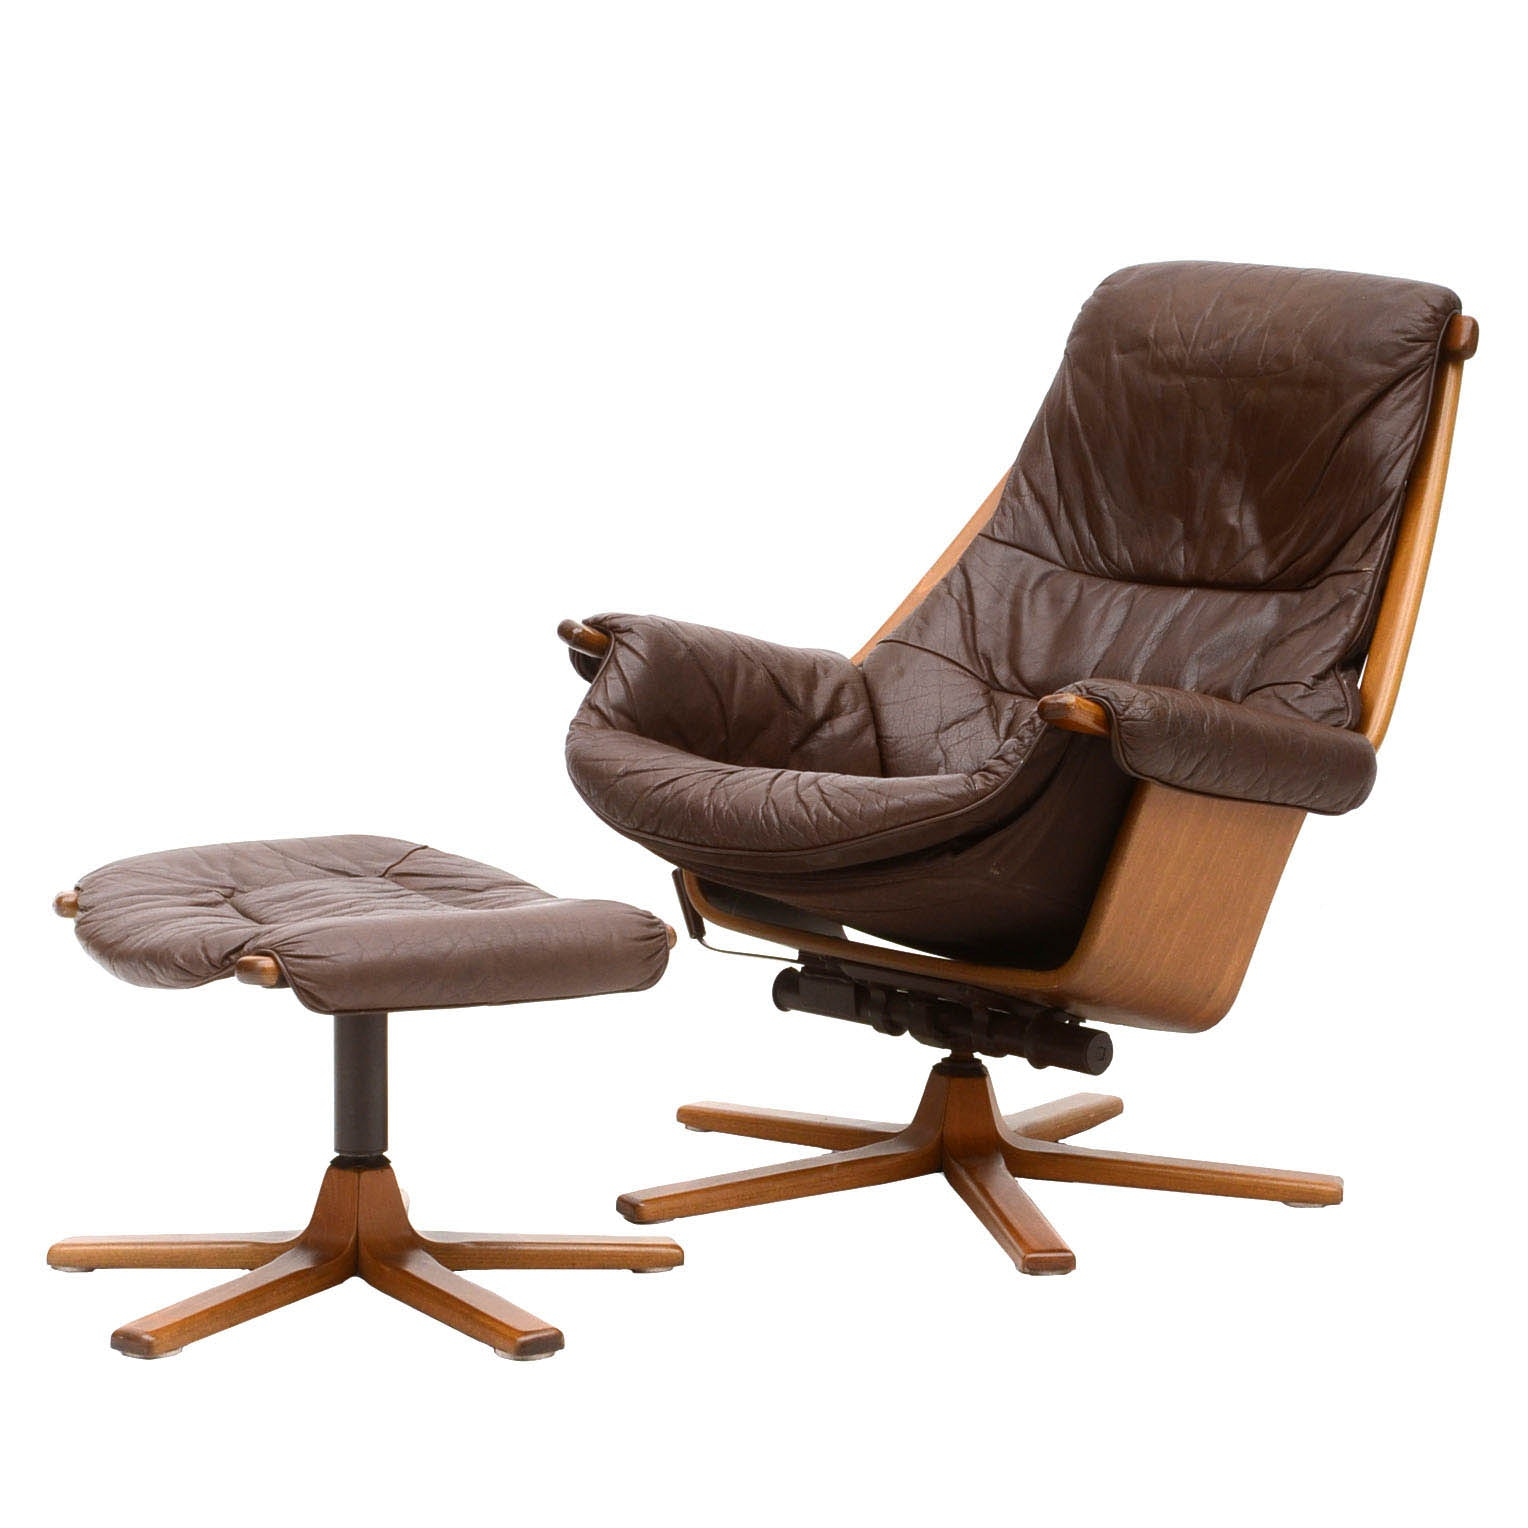 Merveilleux Swedish Leather Recliner And Ottoman By Mobel ...